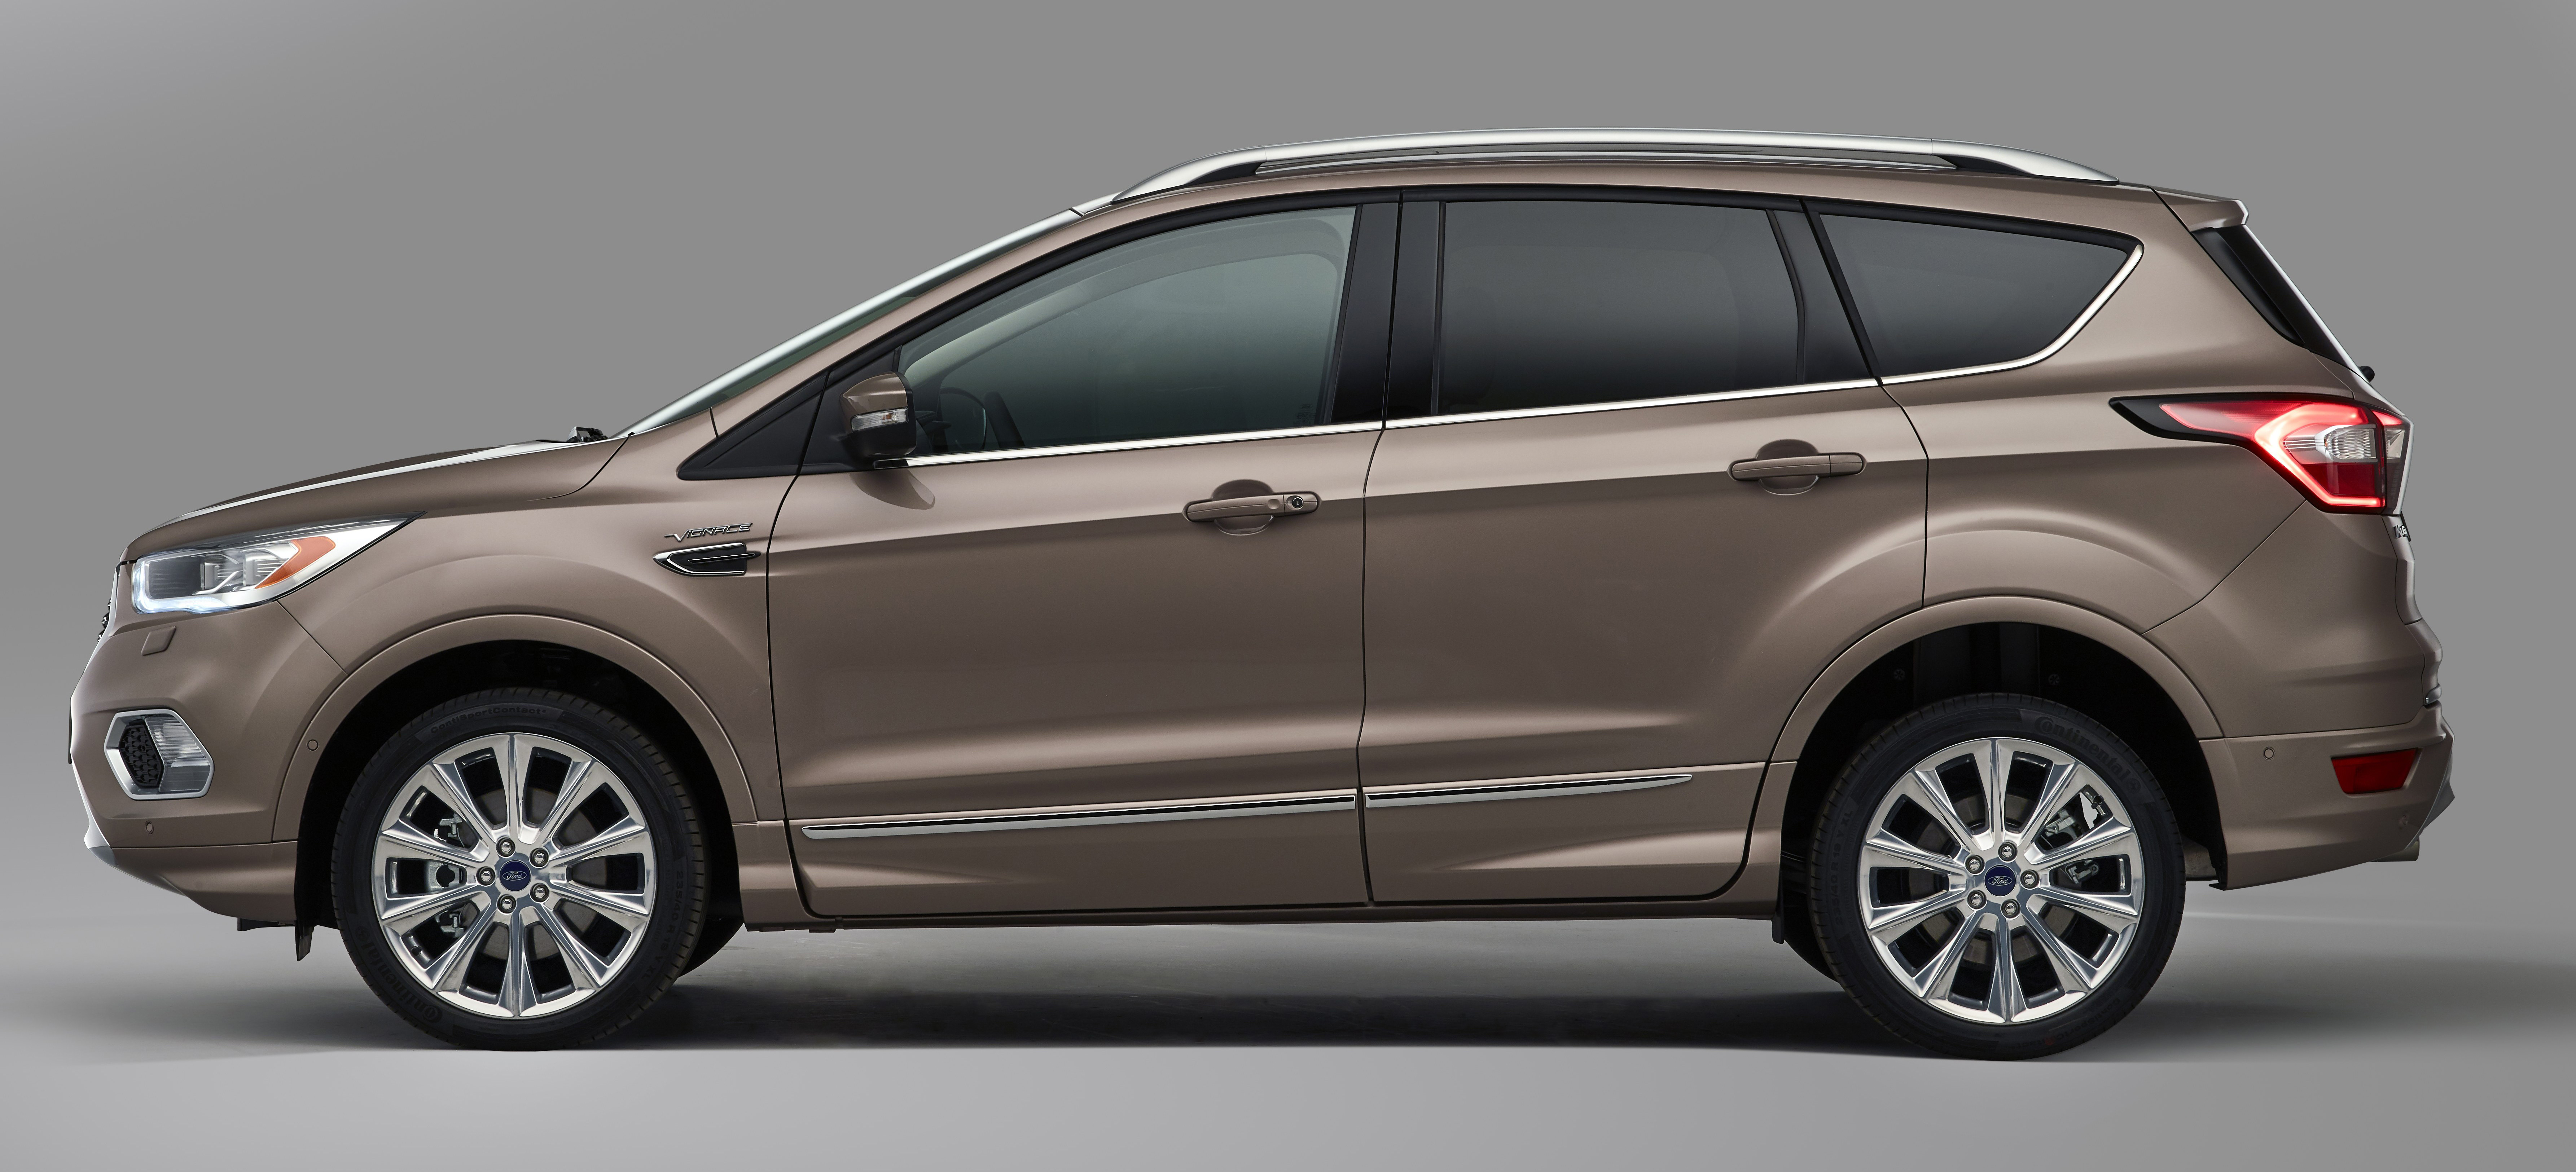 Image Result For Ford Kuga Vignale